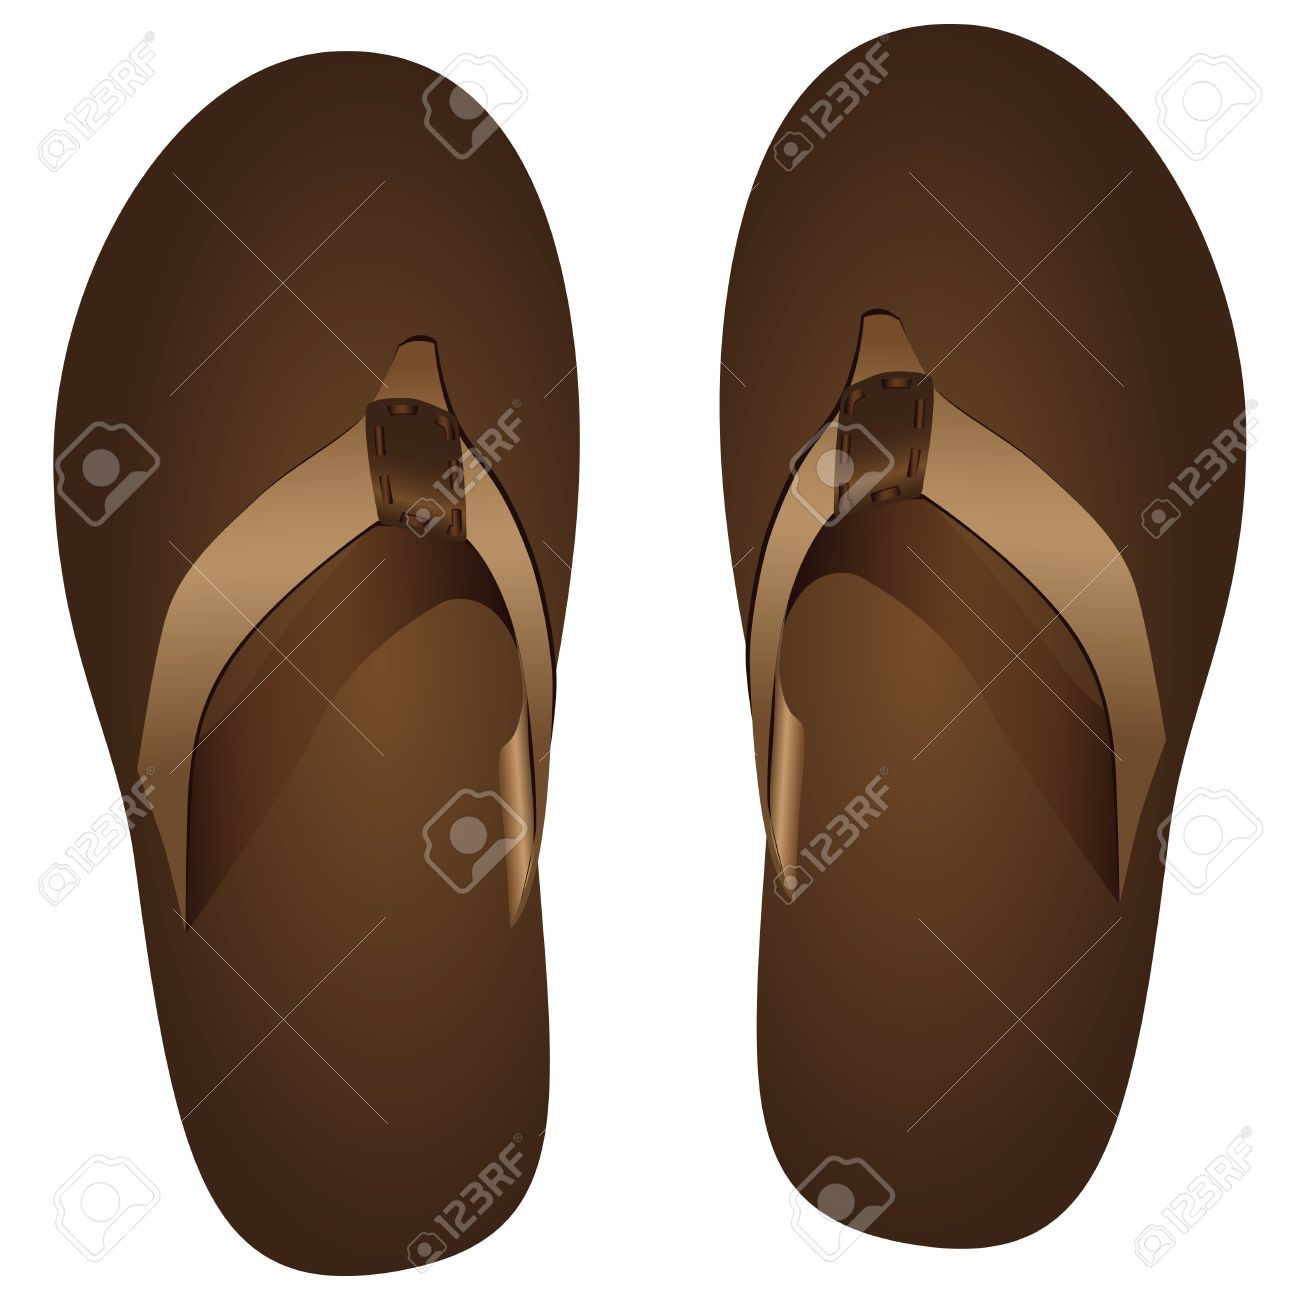 Summer Flip Flop. Water Shoes With Jumpers For The Toes. Vector.